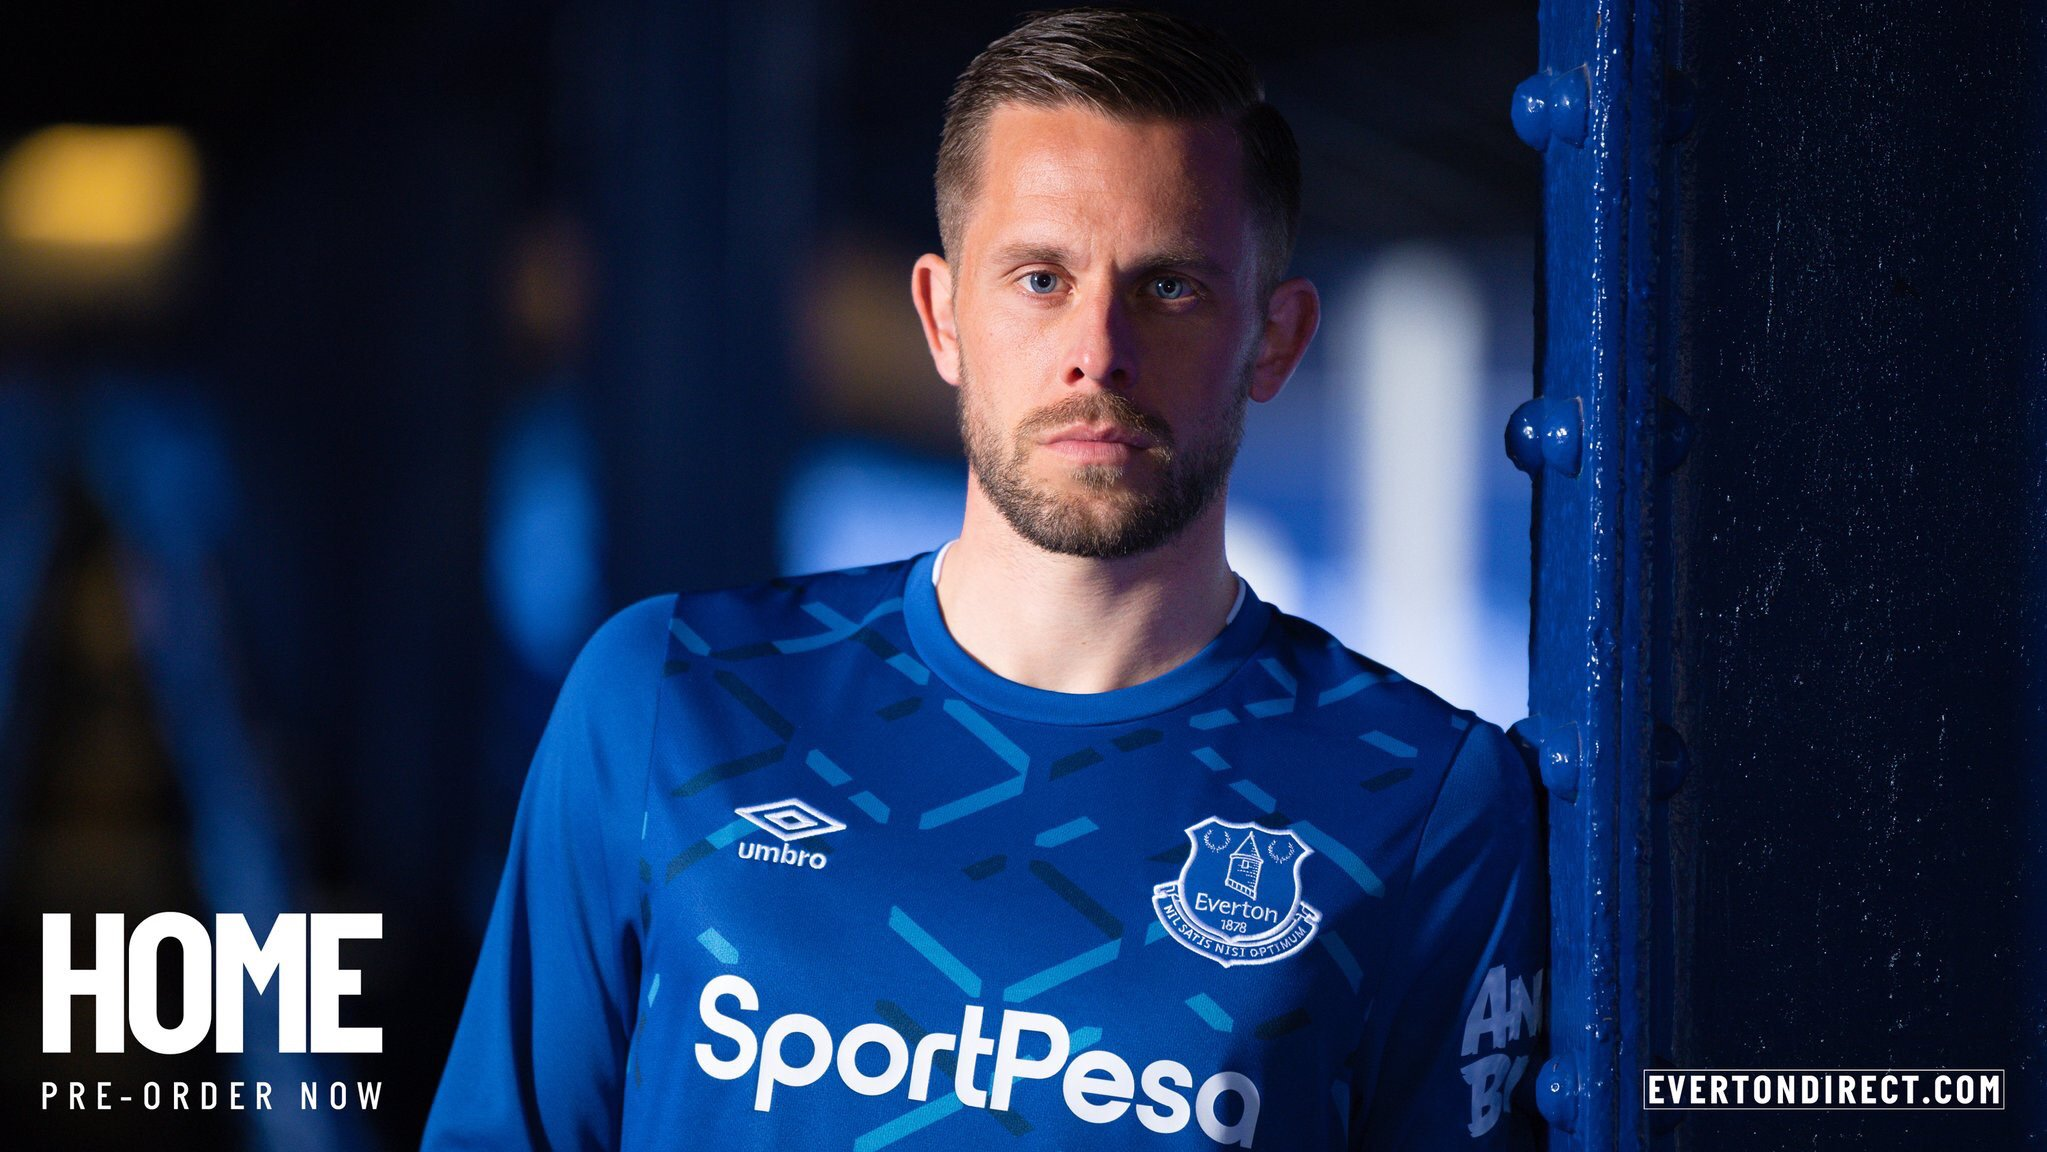 Umbro Everton FC Home Kit 2019-20 Revealed